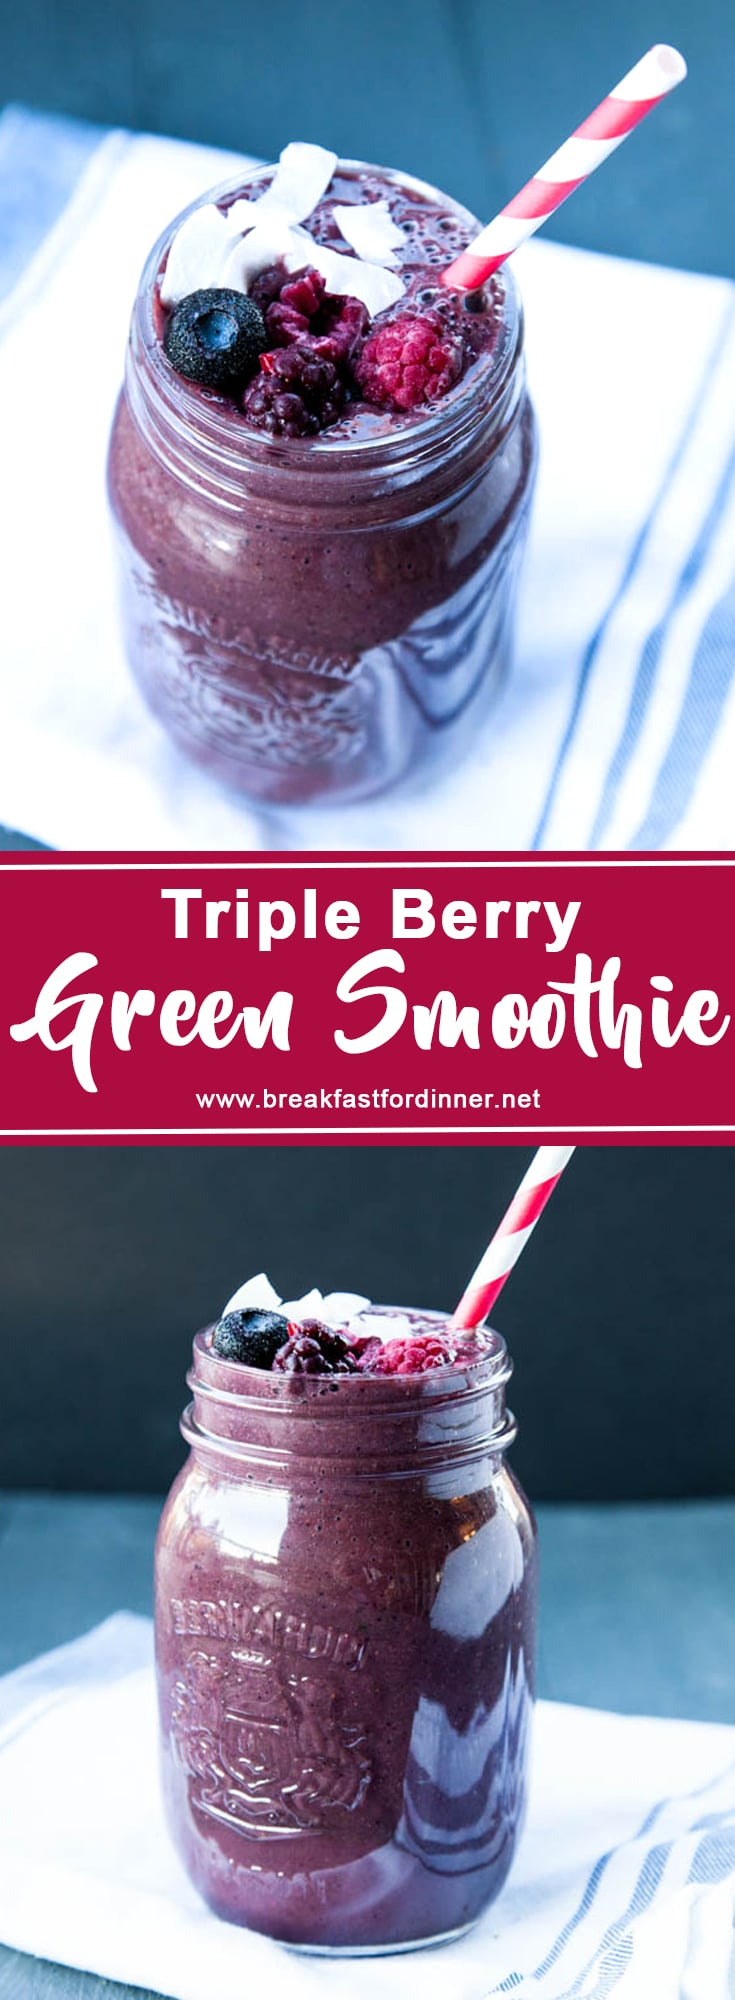 A full cup of spinach is hiding in this individual-size berry smoothie!